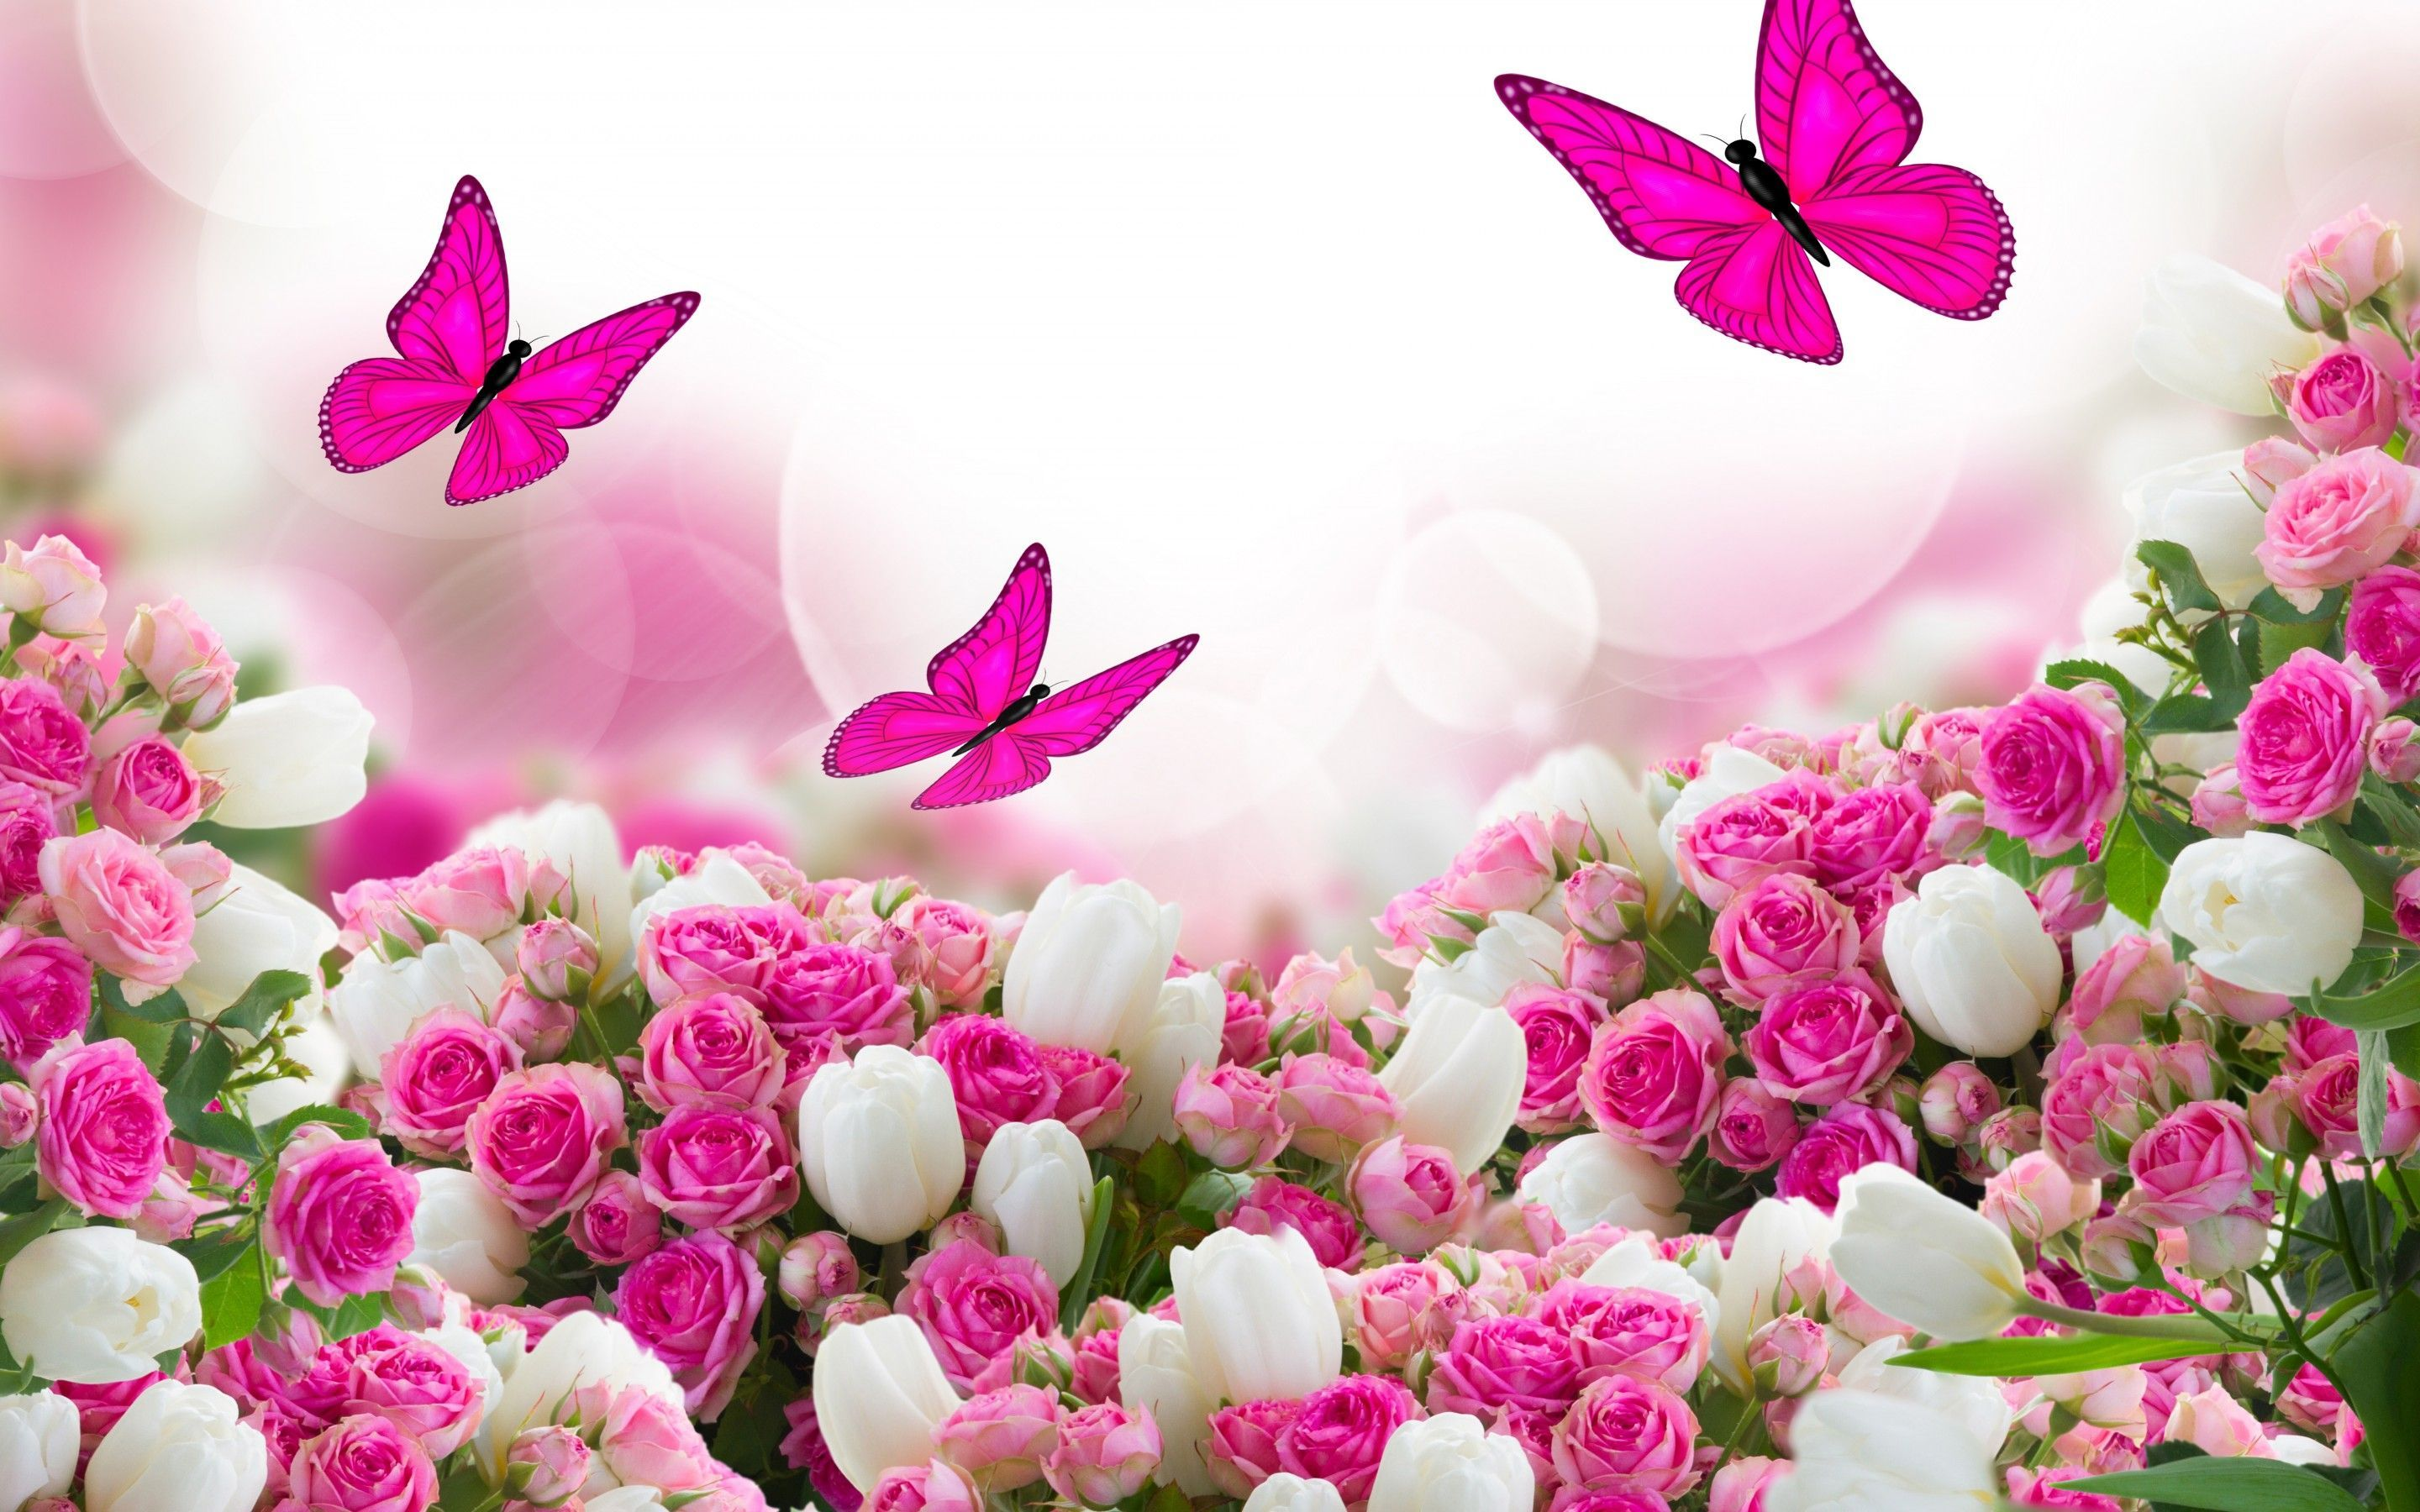 Flower pink rose gallery 560457989 wallpaper for free awesome flower pink rose pics dhlflorist Choice Image